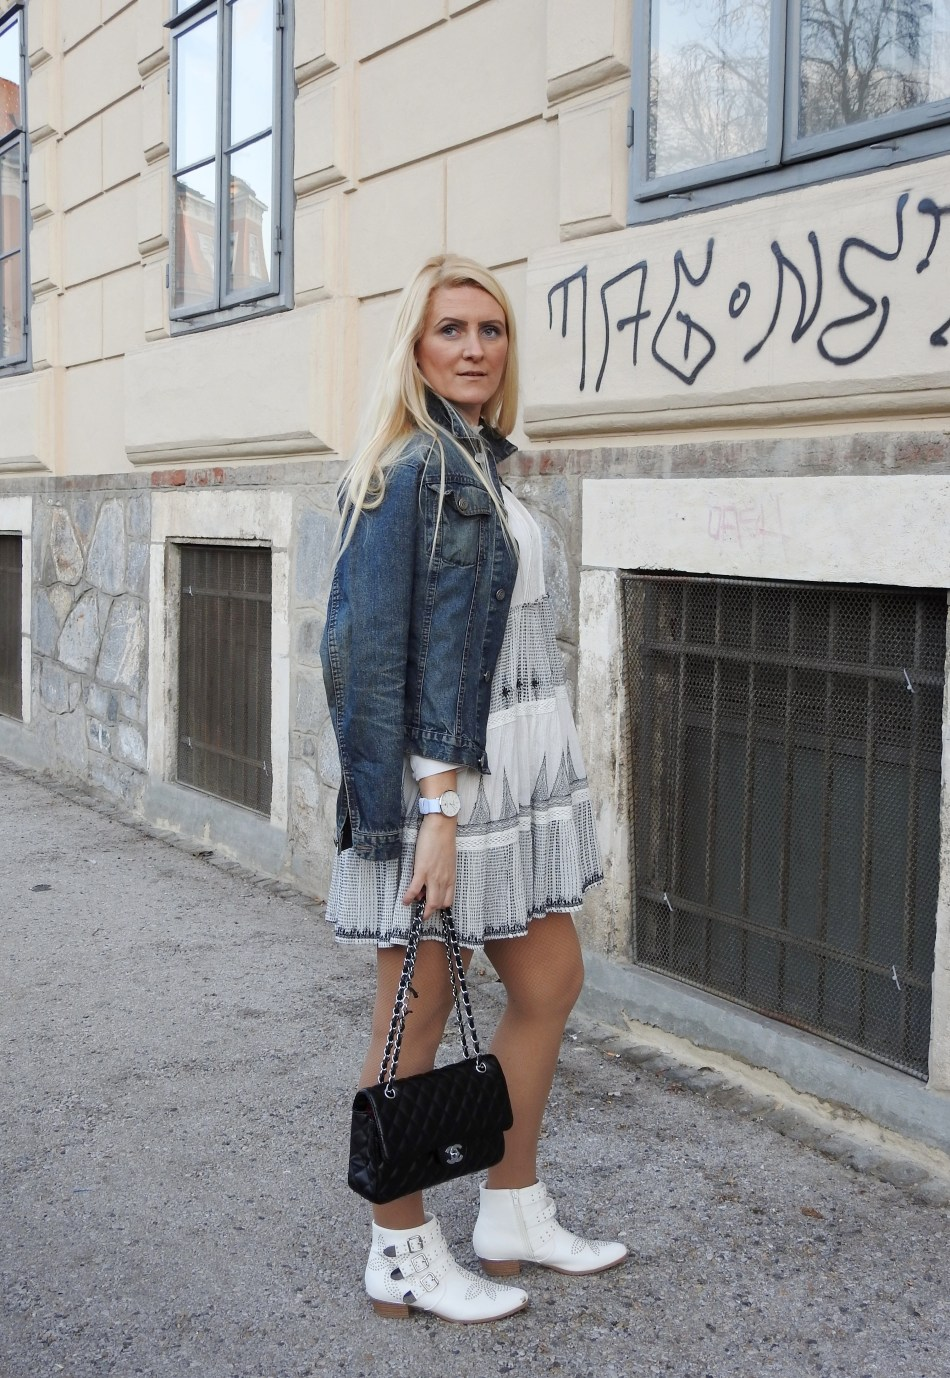 Dark-Denim-Trends-2018-Chanel-Bag-White-Leather-Boots-Weißes-Leder-Studs-Nieten-Suzanna-Chloe-Jeansjacke-Dress-carrieslifestyle-Tamara-Prutsch